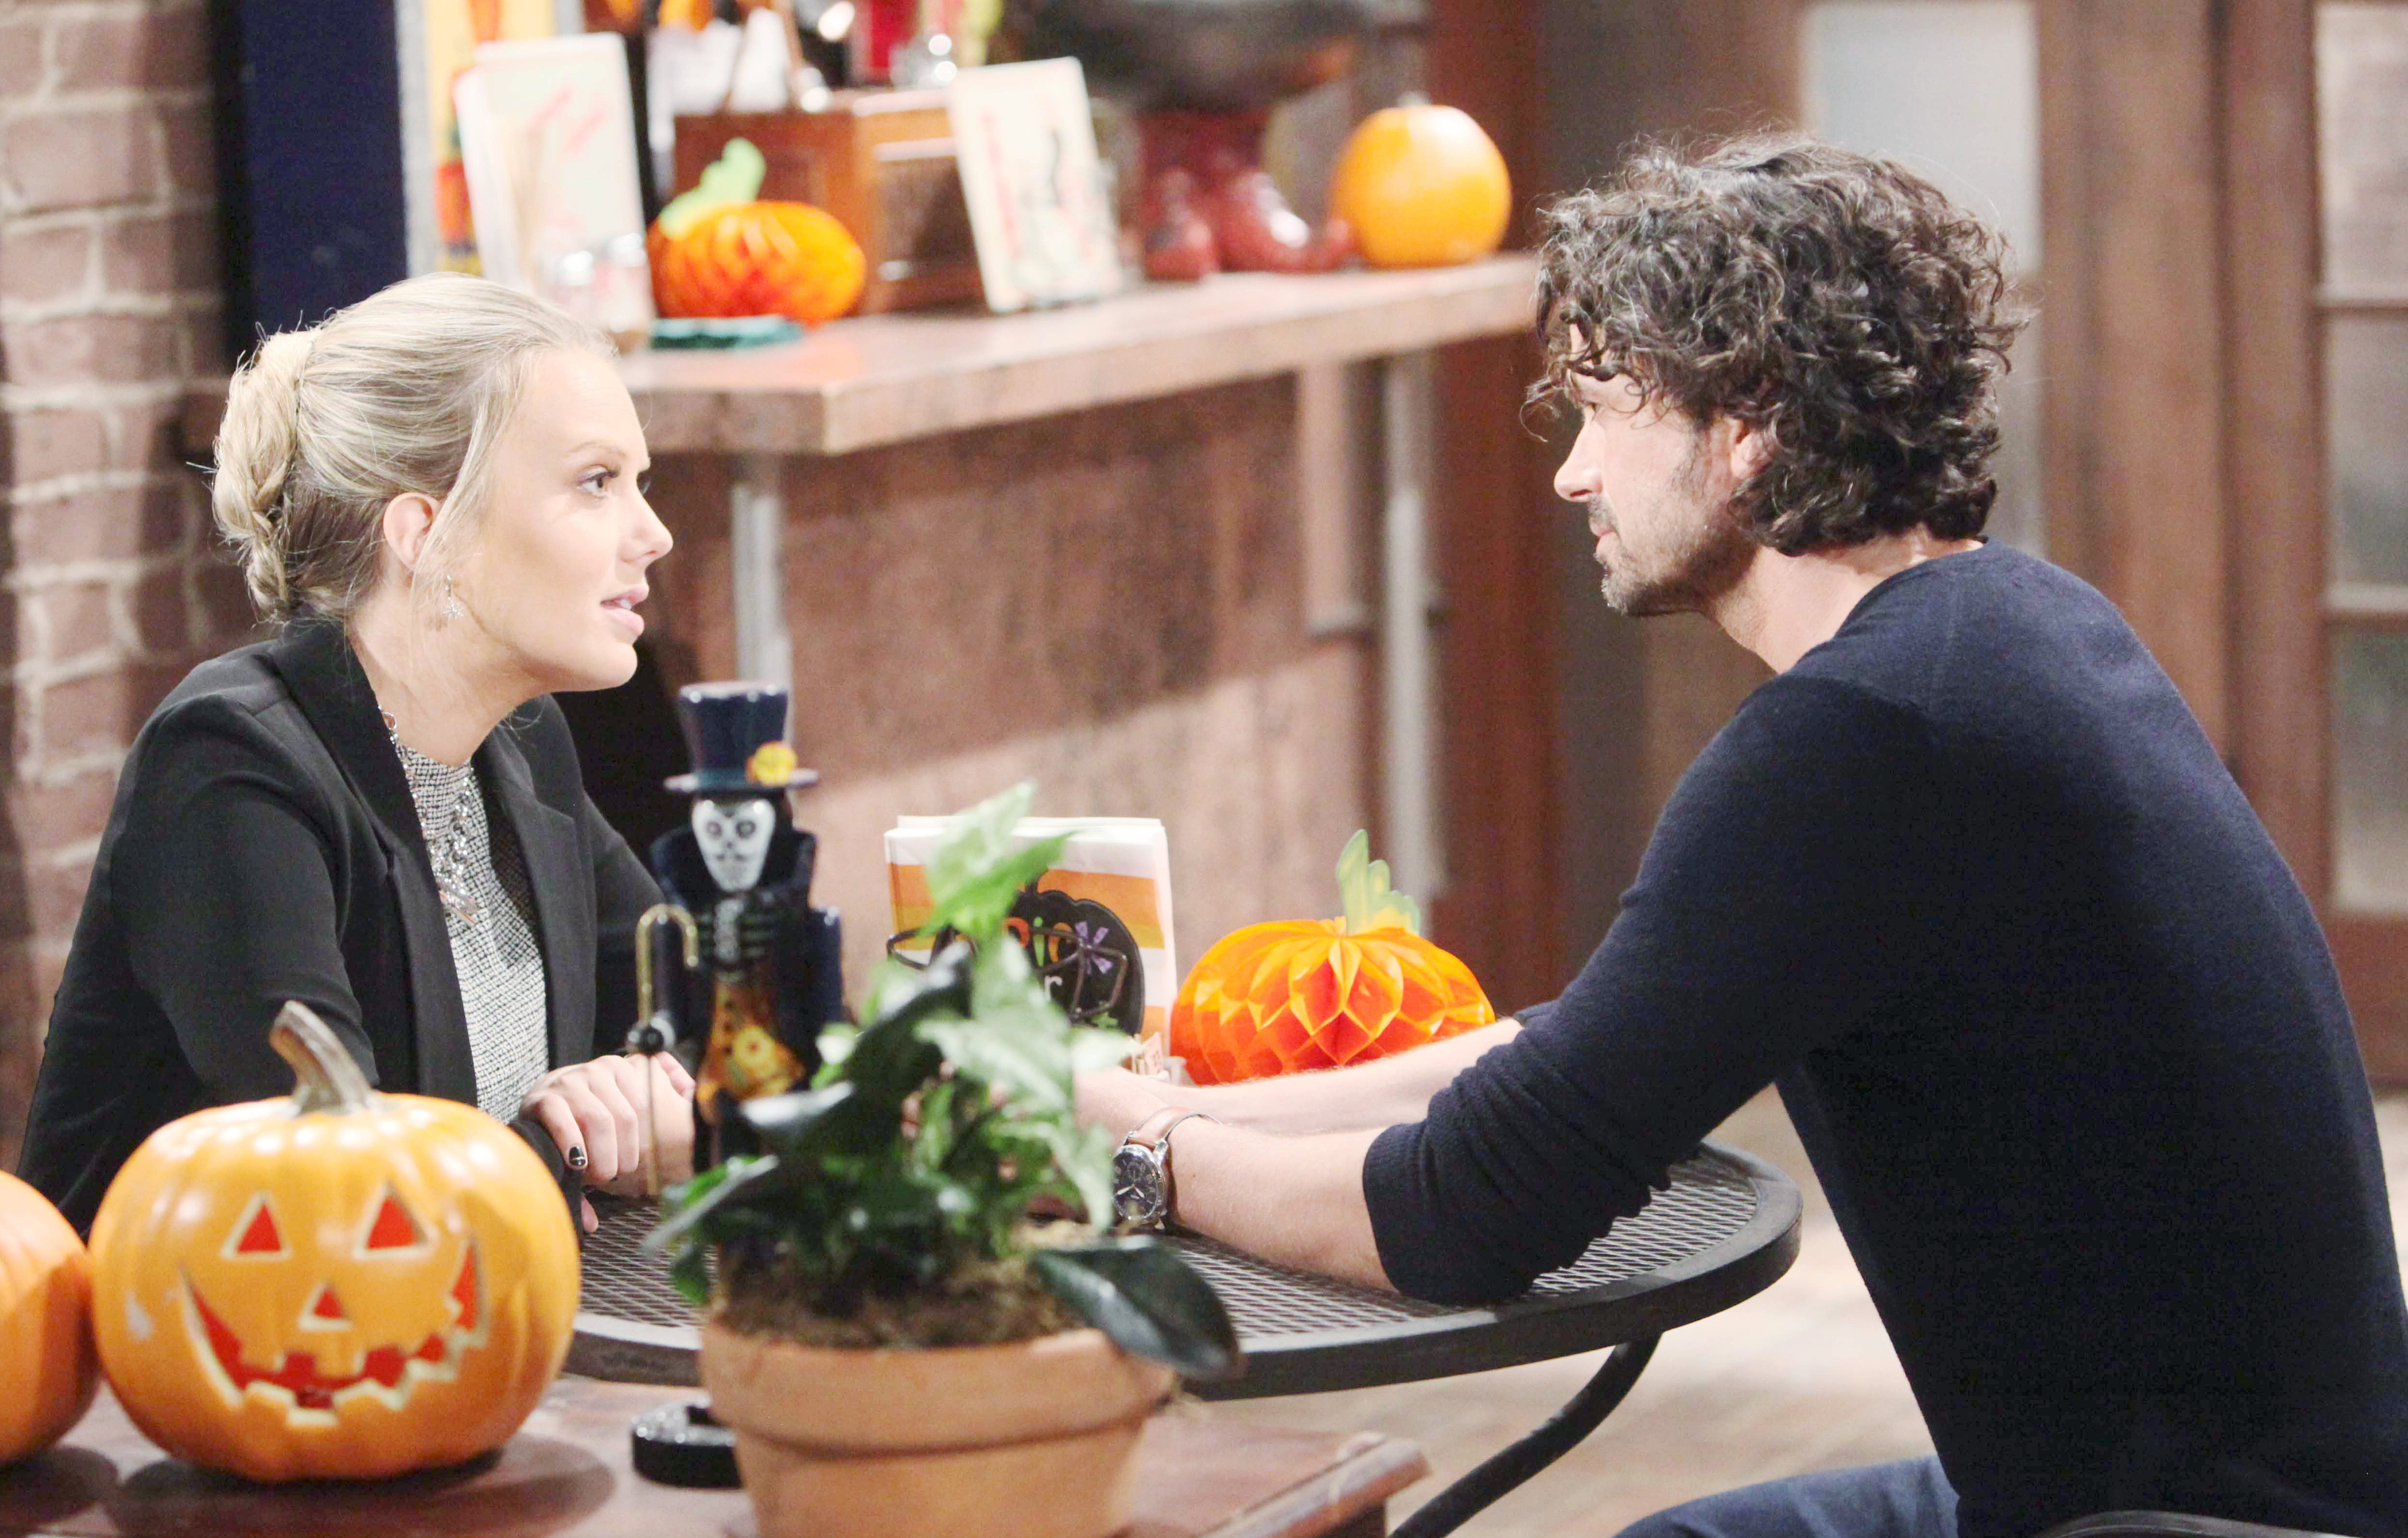 The Young and the Restless Spoilers: Coming Up November 24th – November 30th